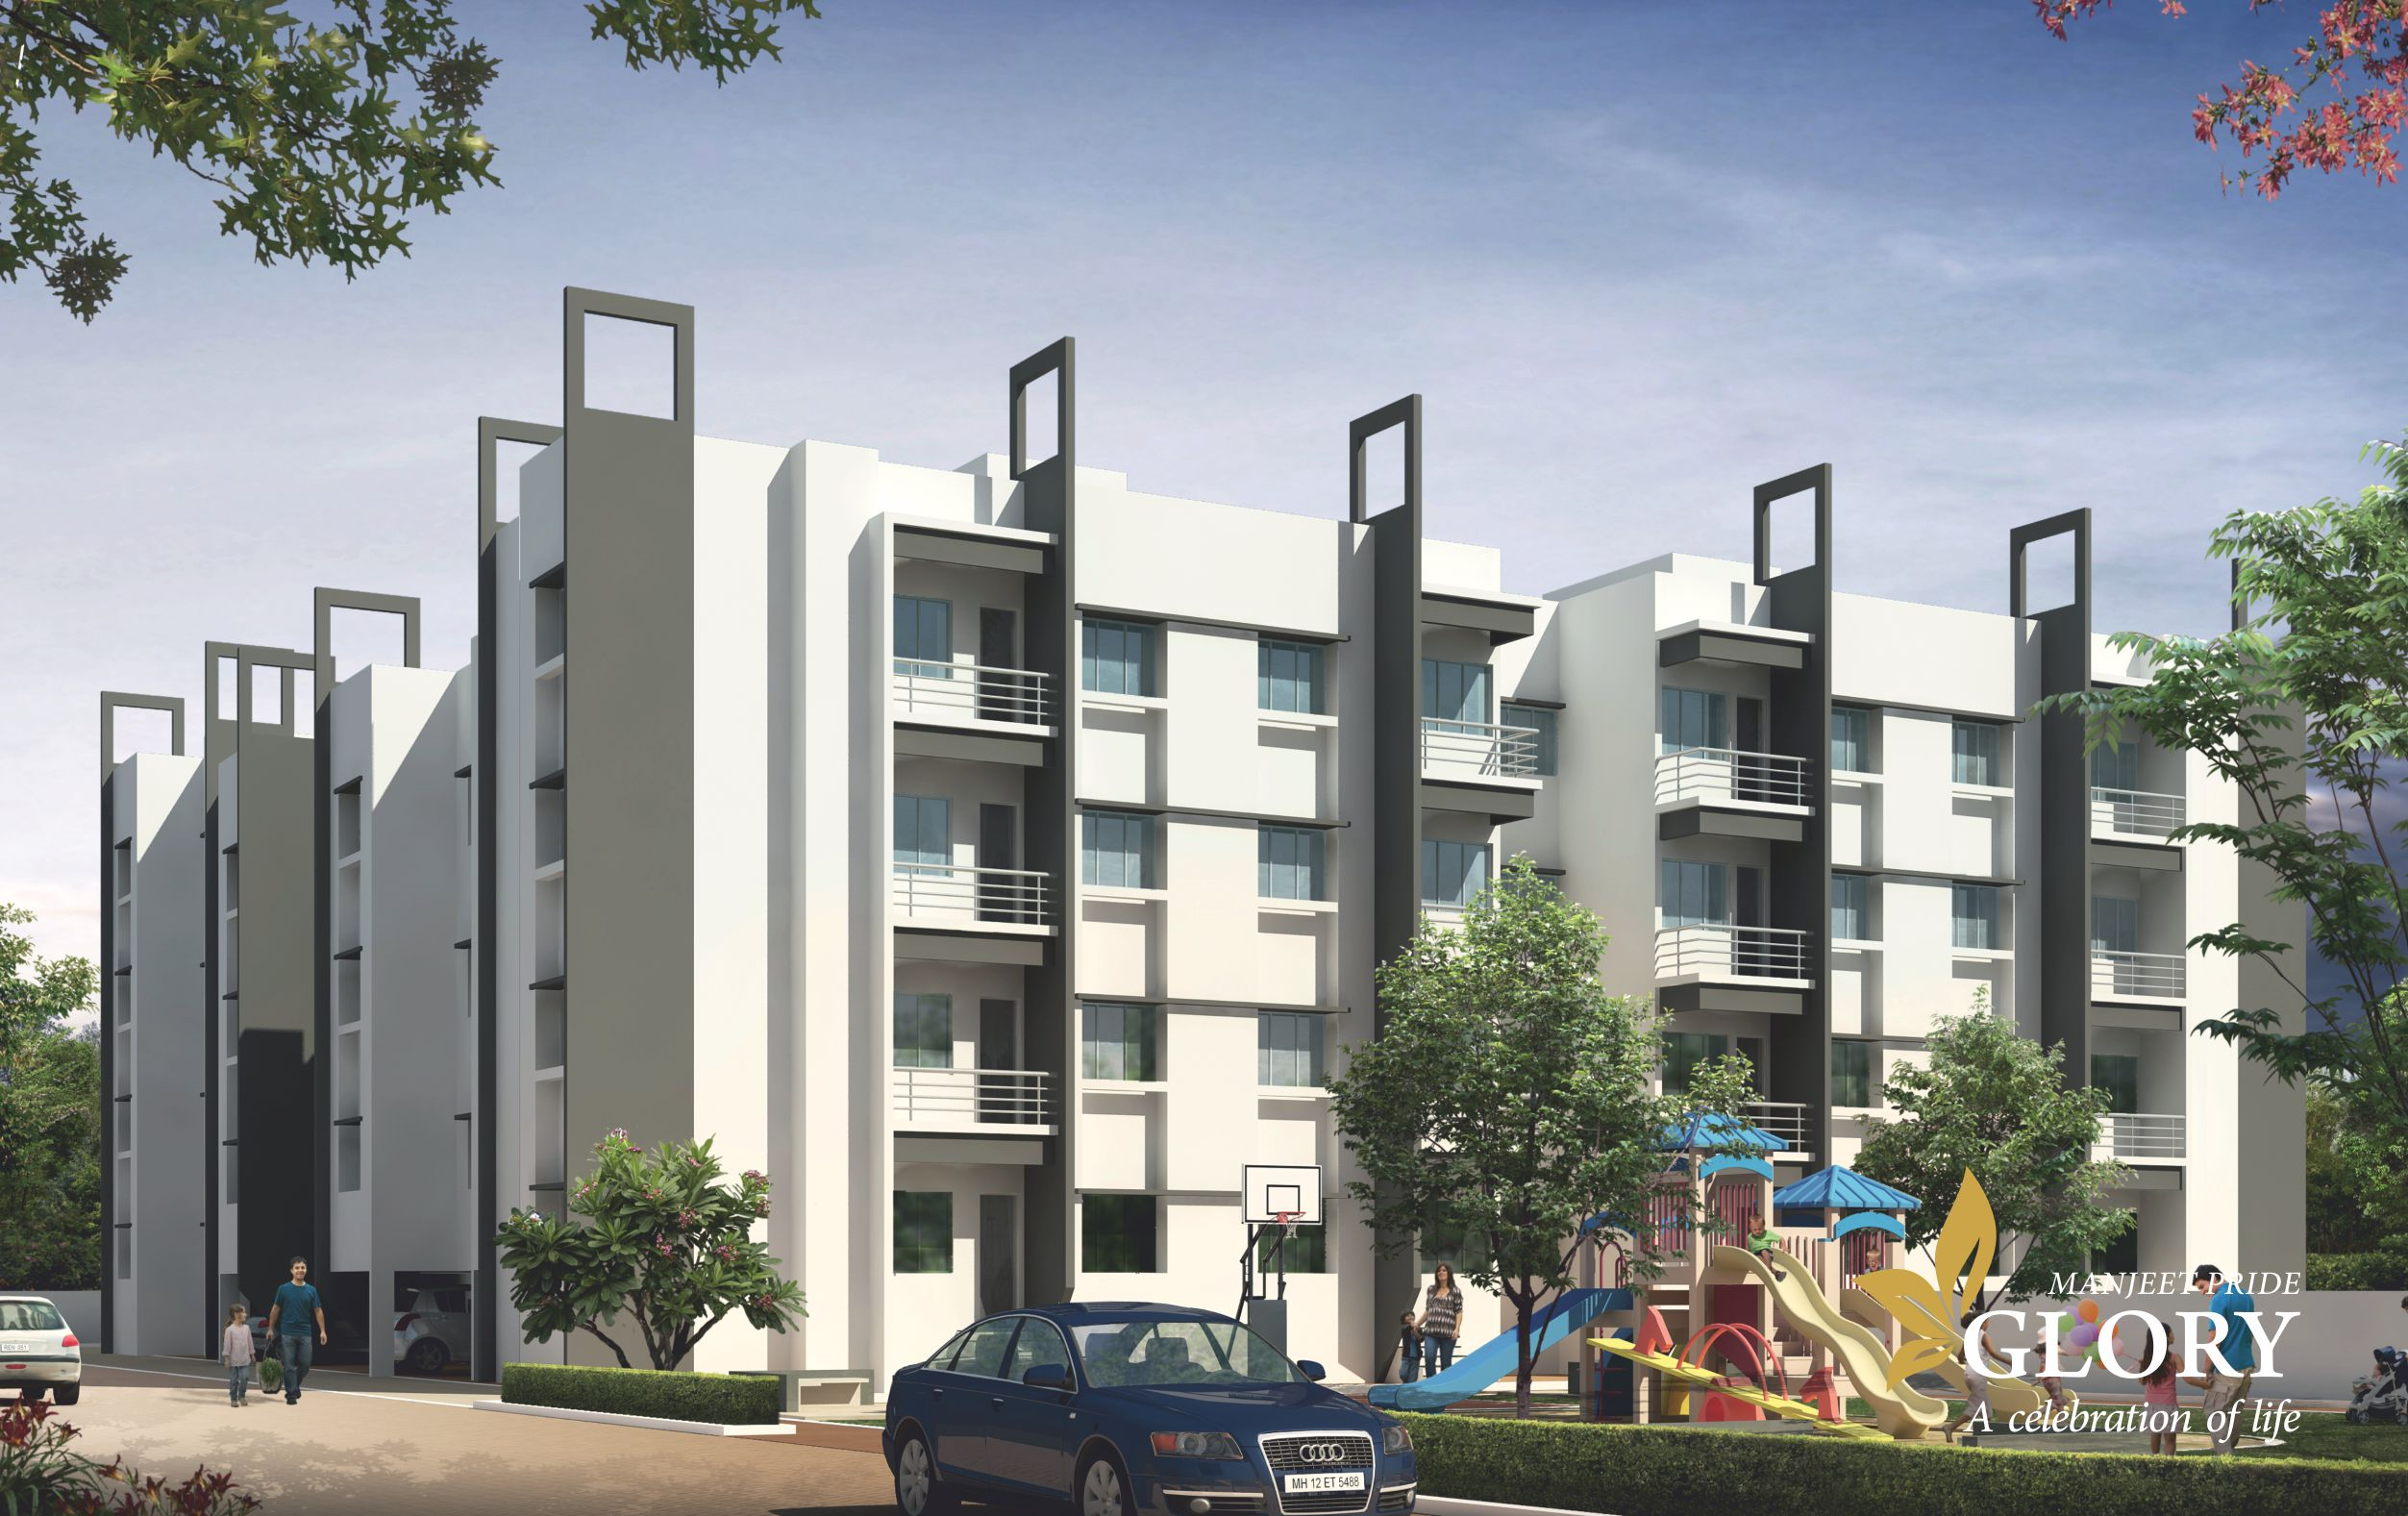 top pride glory 2bhk flats at beedbye pass best best investment property real estate deals aurangabad location